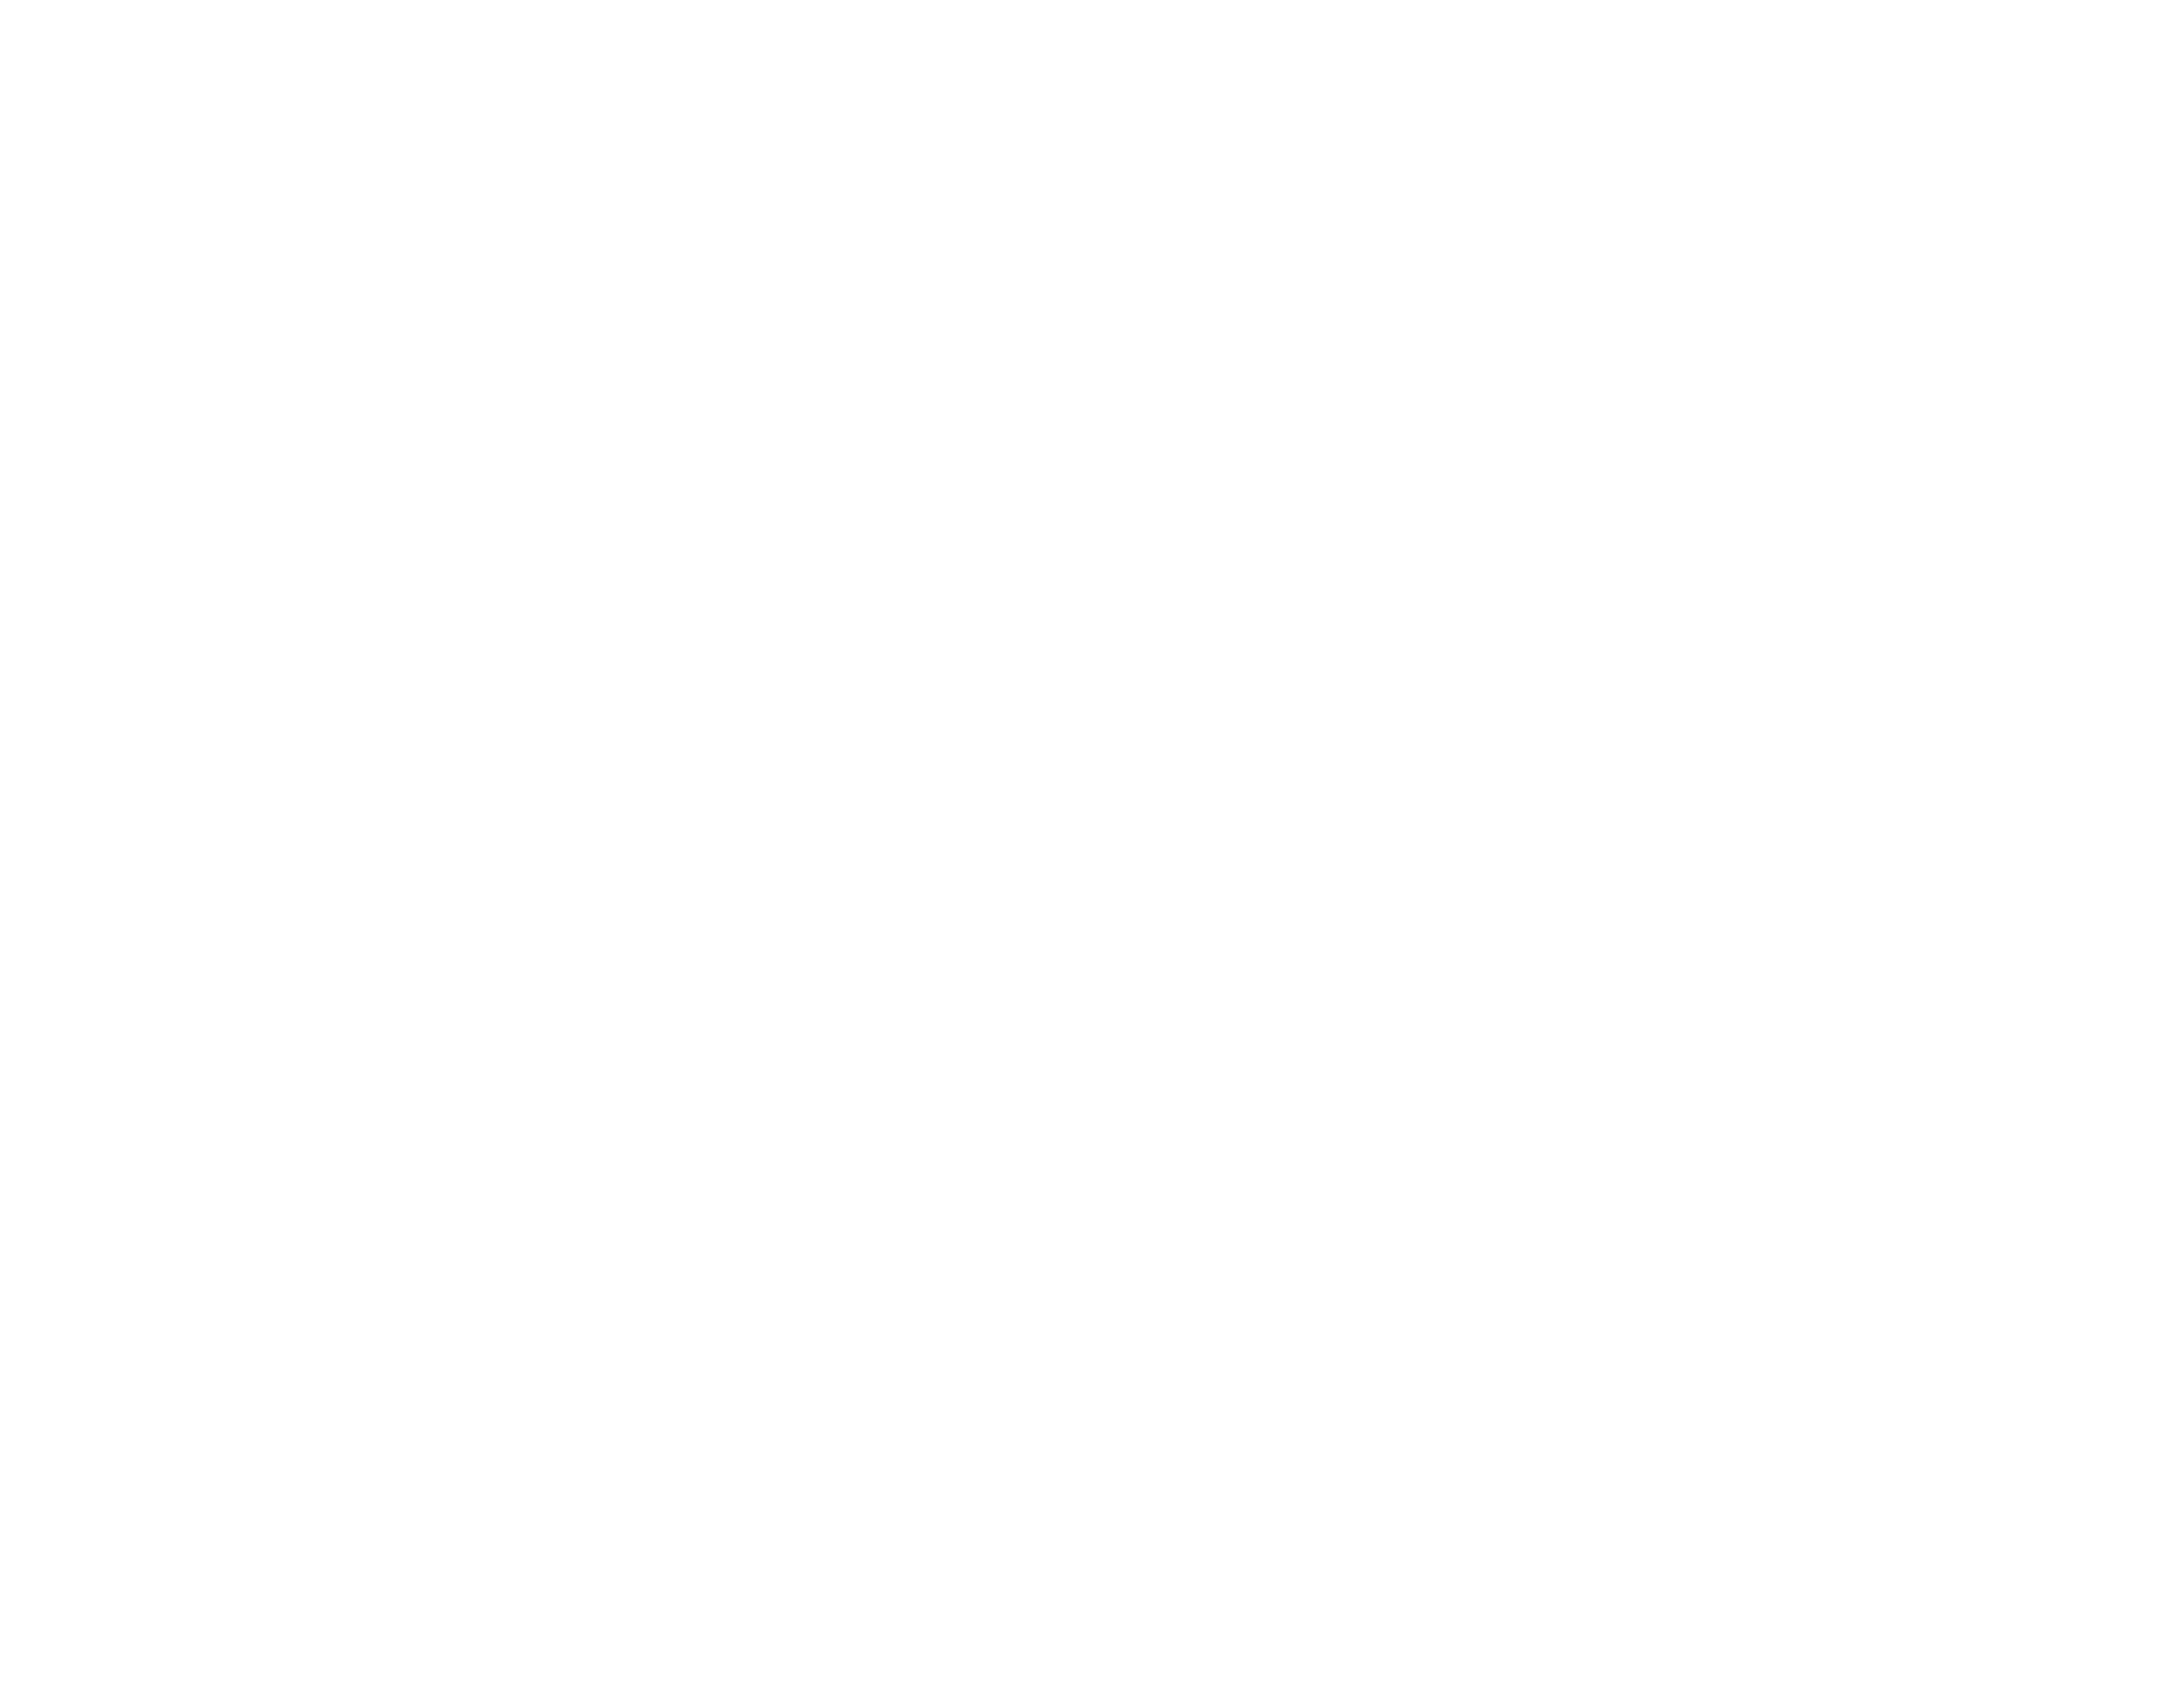 White out logo for coloured backgrounds -  We Support Men S Health Week Logo Large Whiteout Png